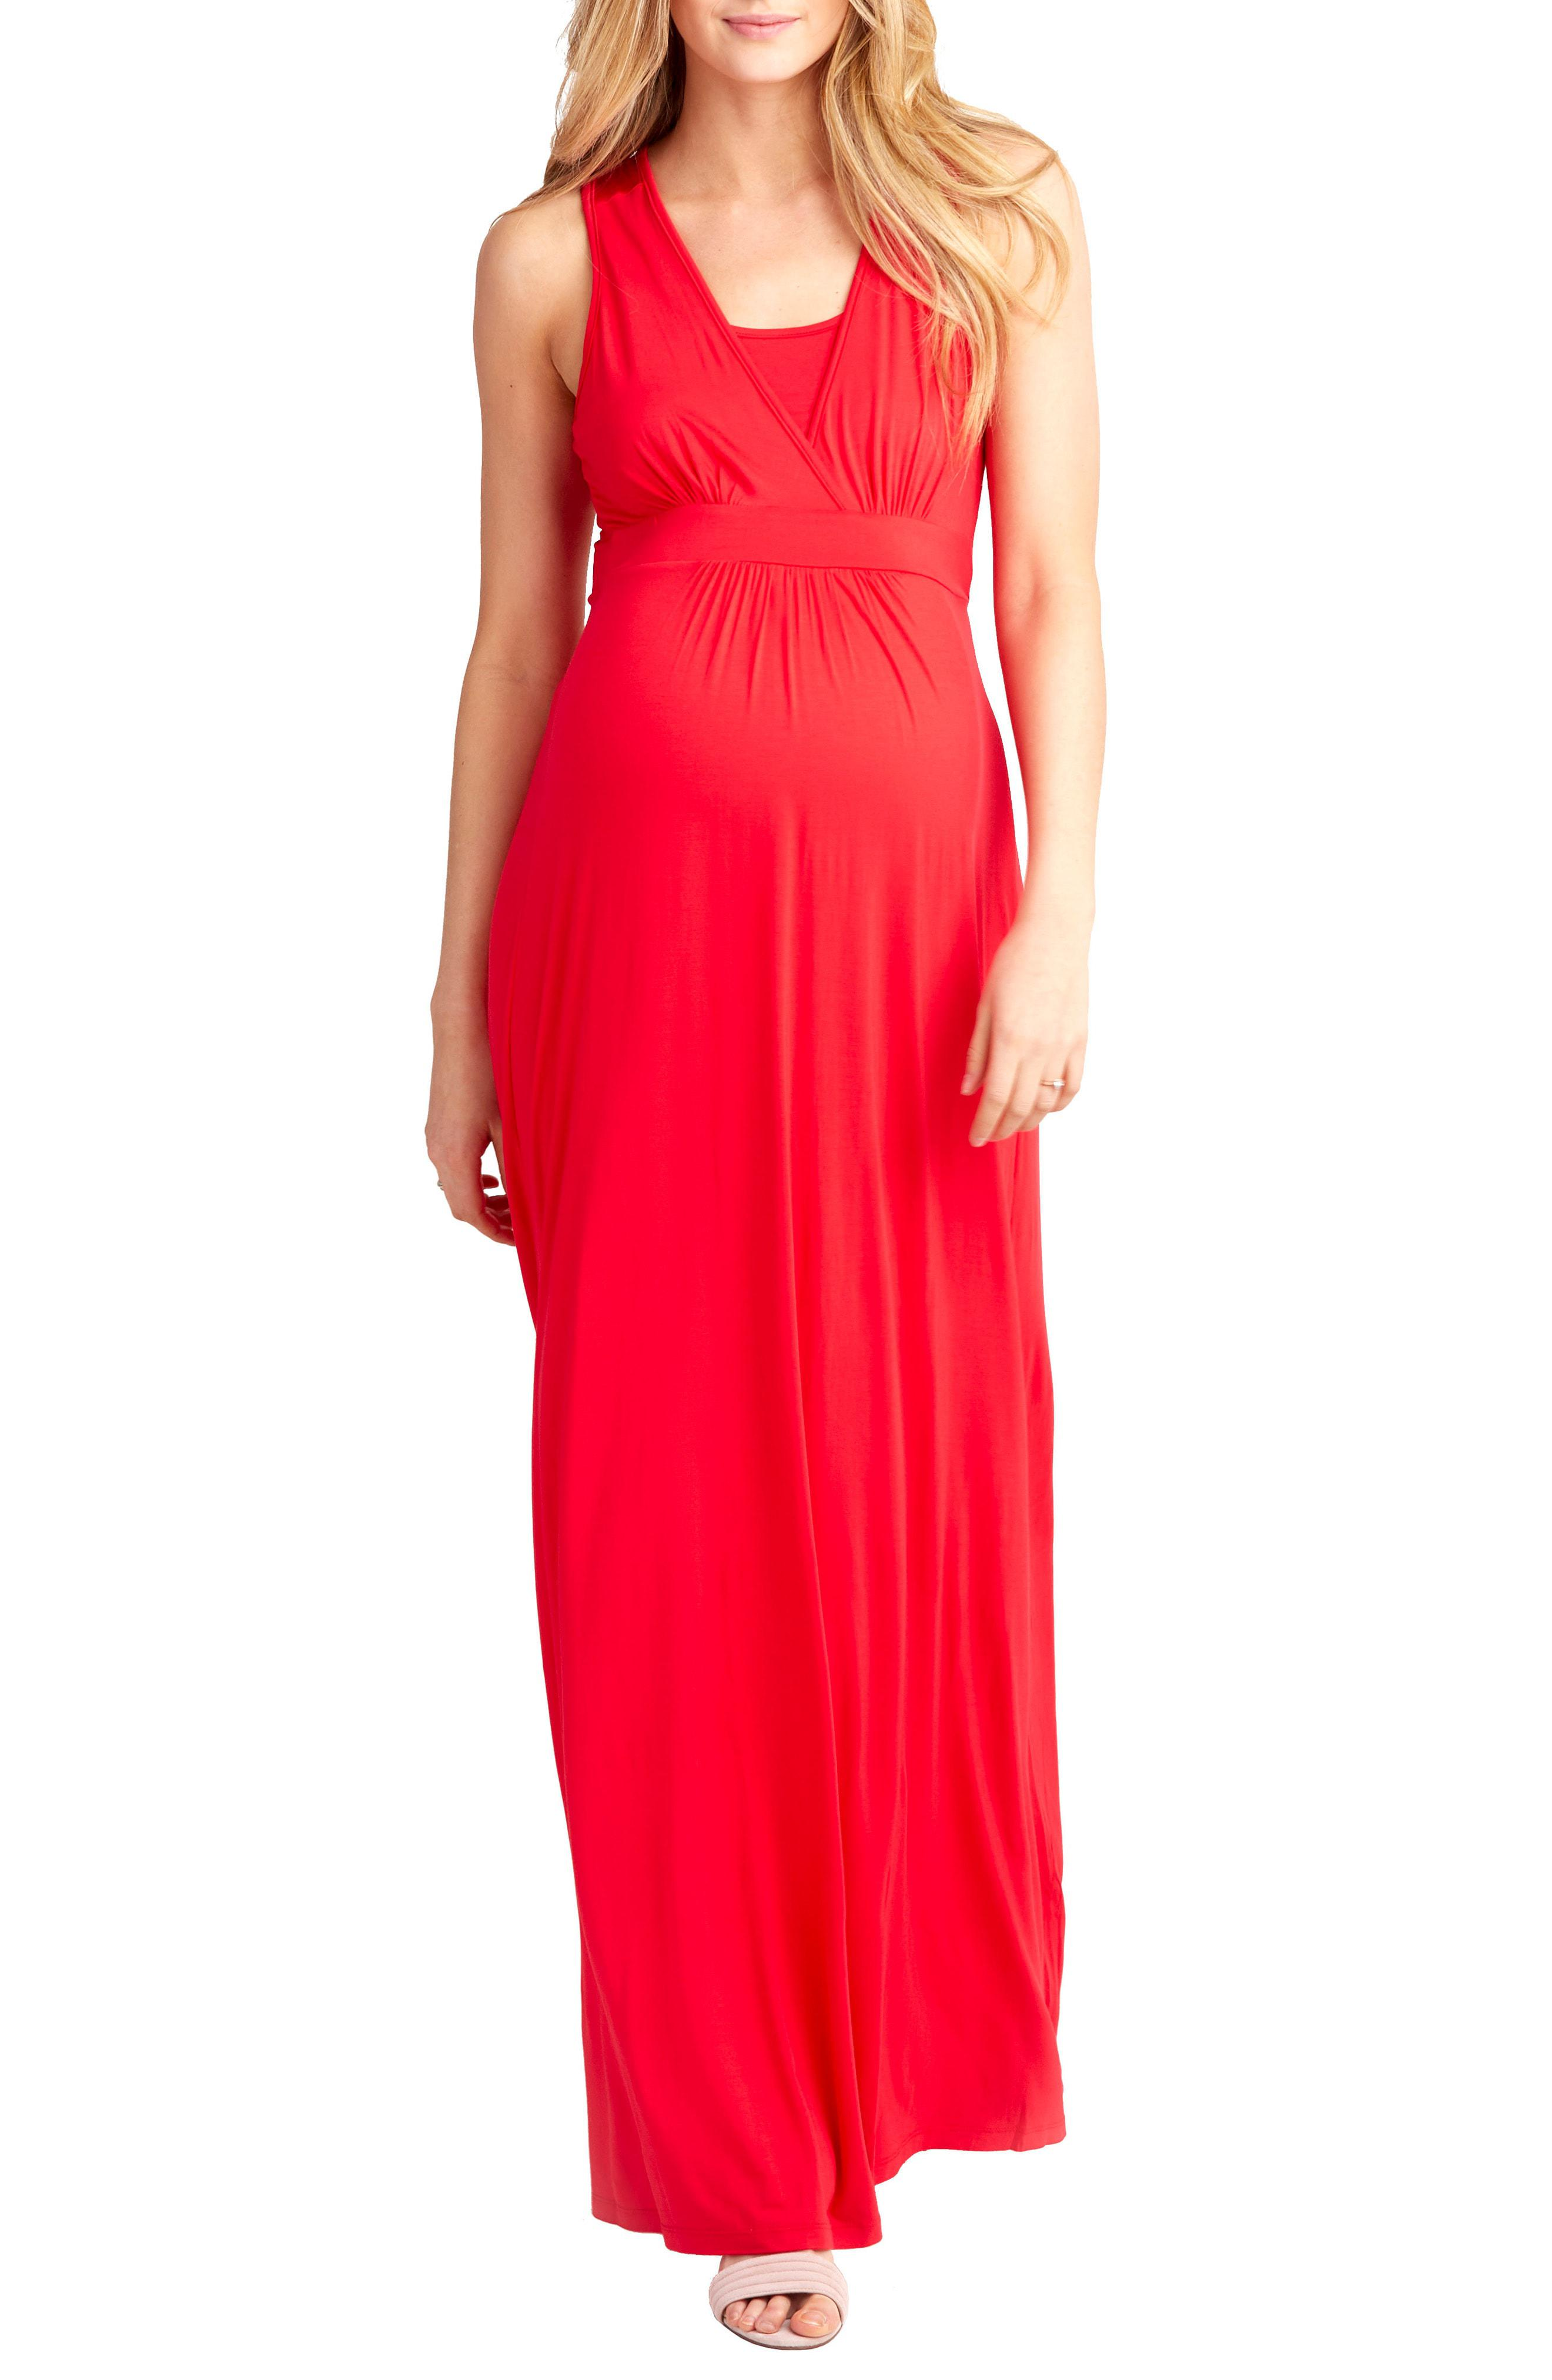 b6e2da6160f Lyst - Nom Maternity Hollis Maternity nursing Maxi Dress in Red ...